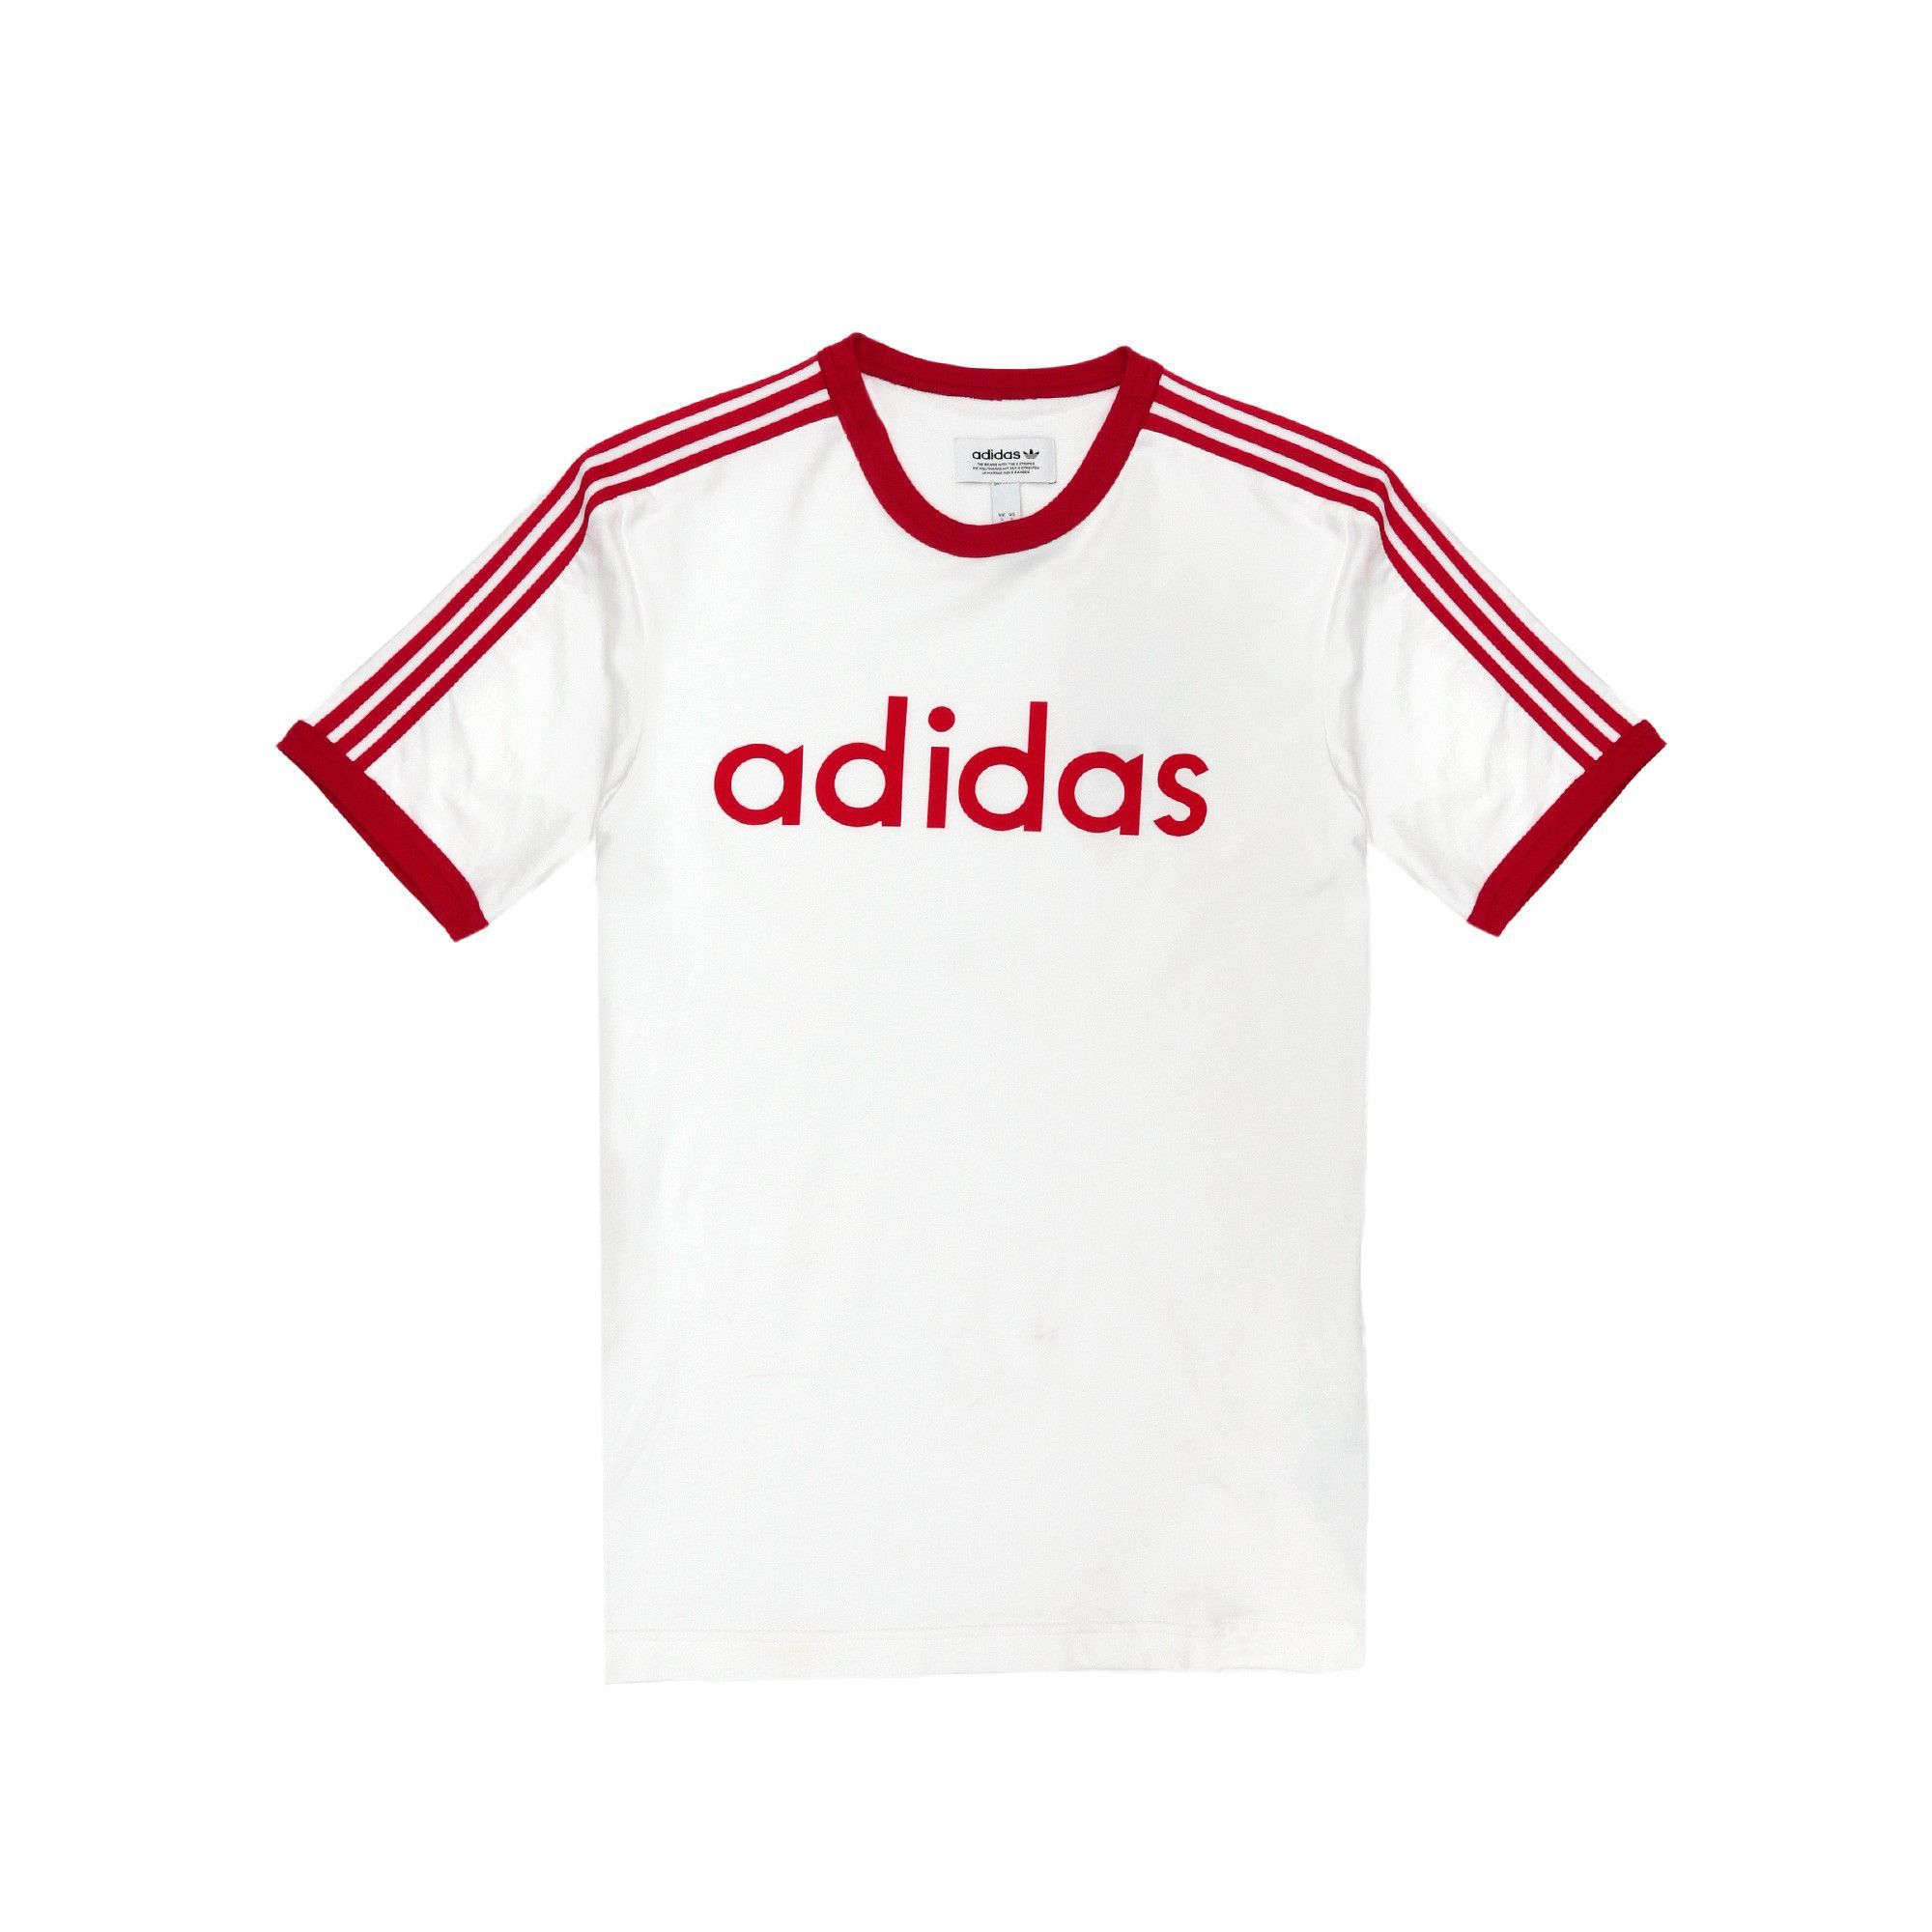 88f32235396 Adidas x Made in Germany London OG Tee - White Red